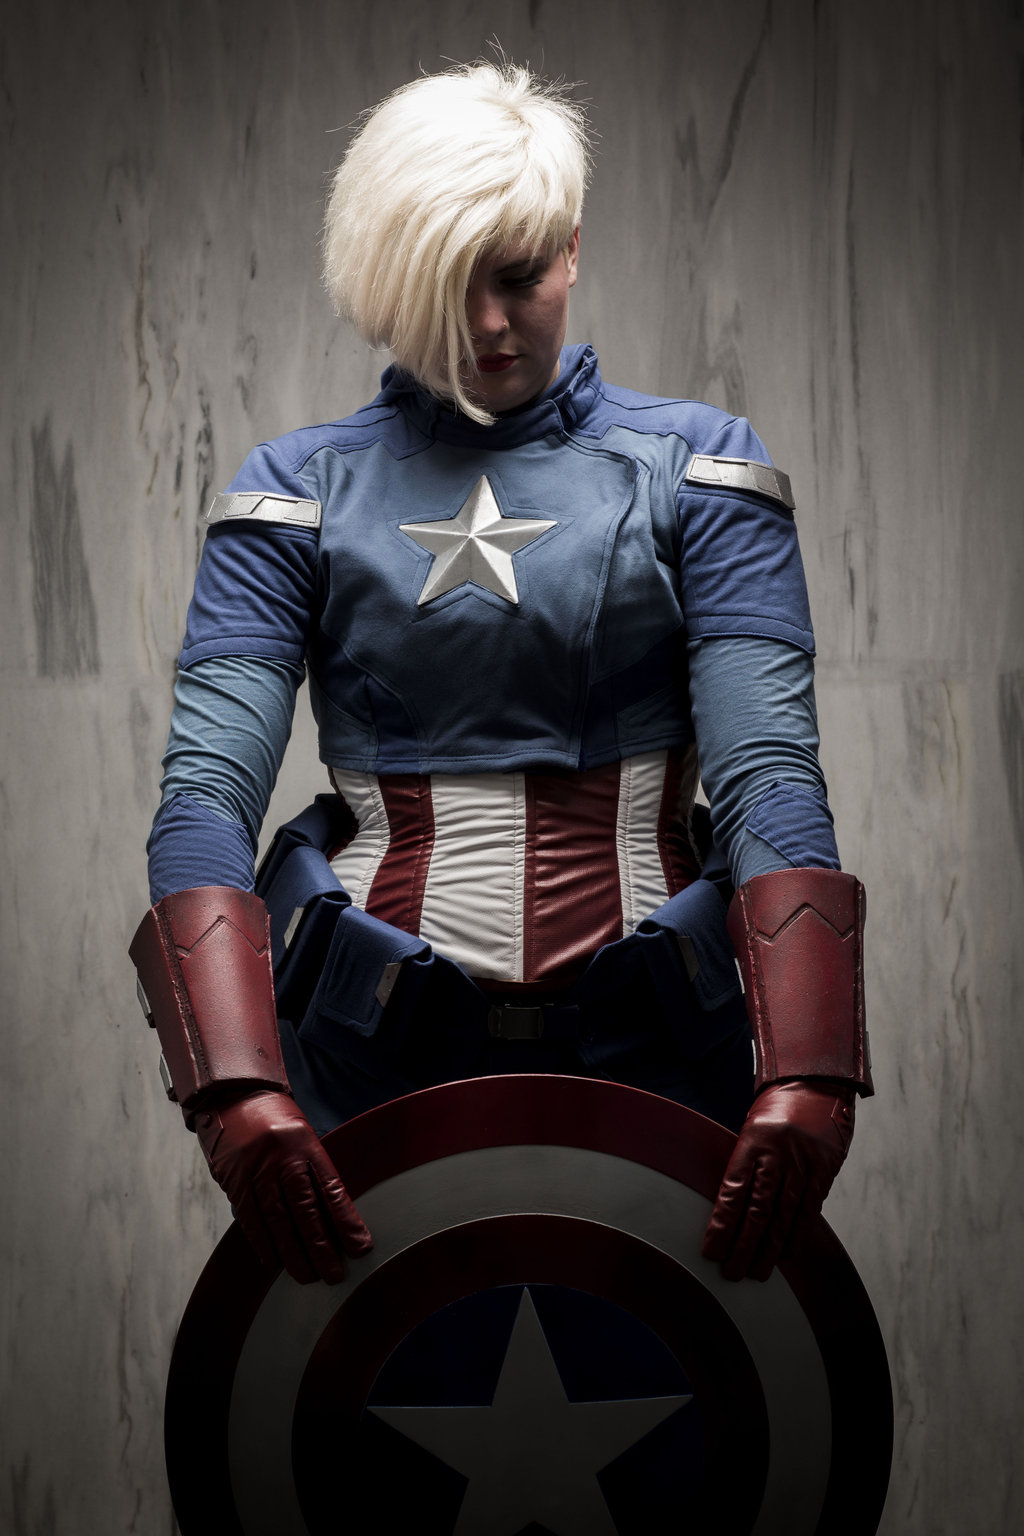 imatangelo  is Captain America | Photo by Joey Miller